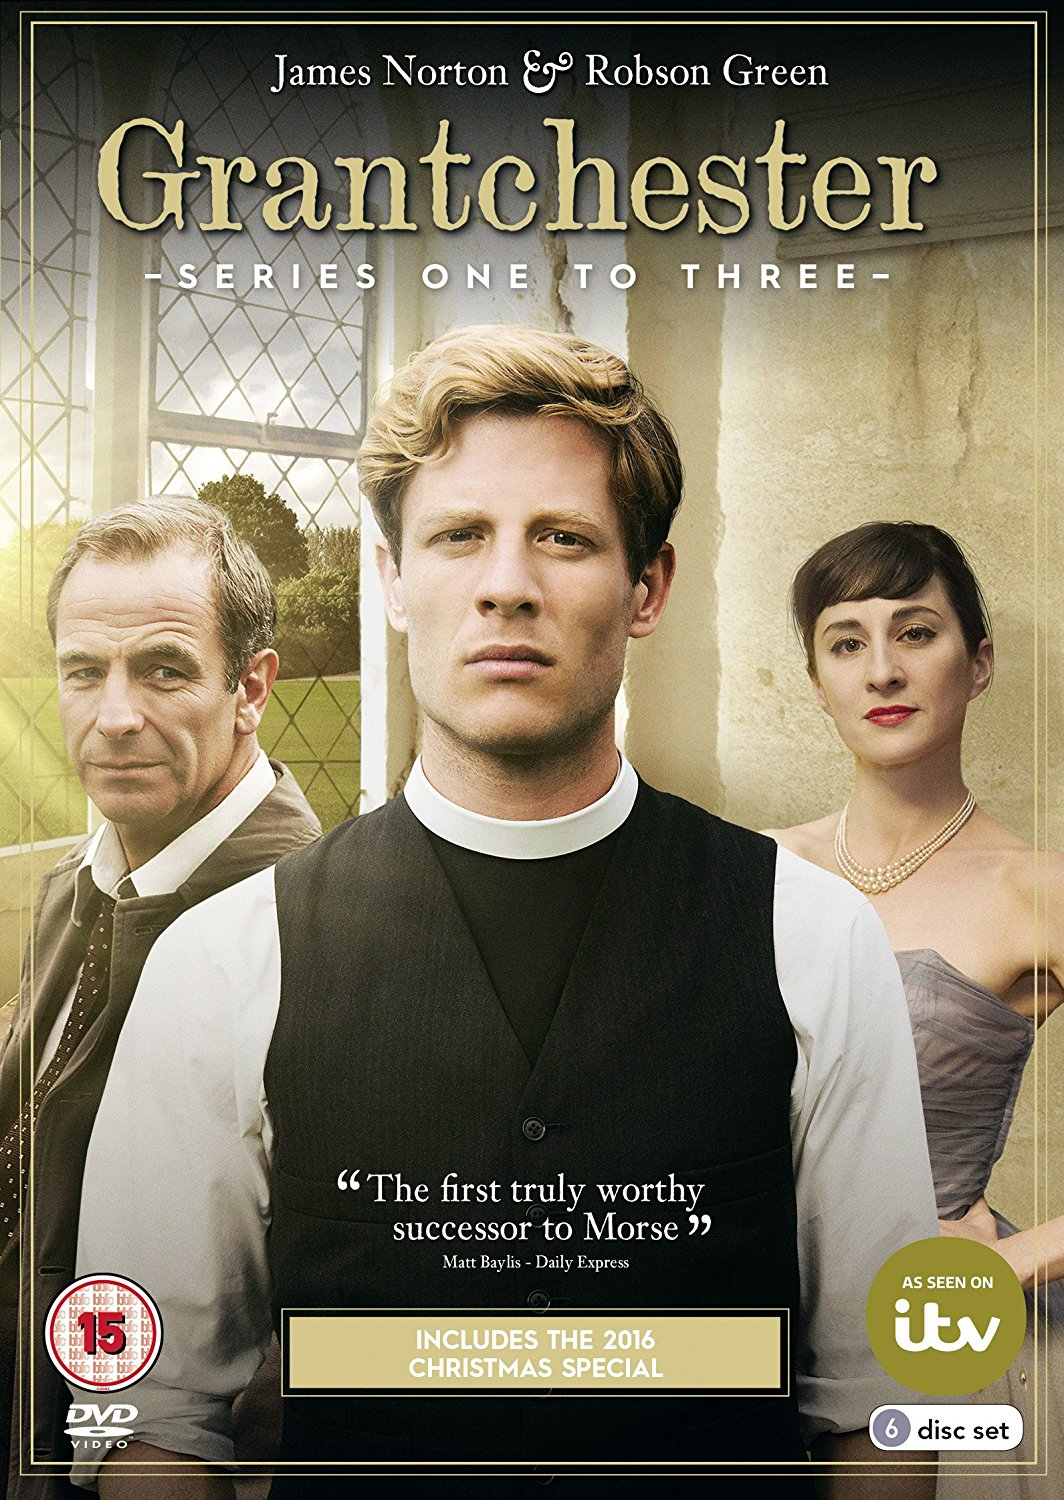 Grantchester (TV Series 2014– ) - IMDb